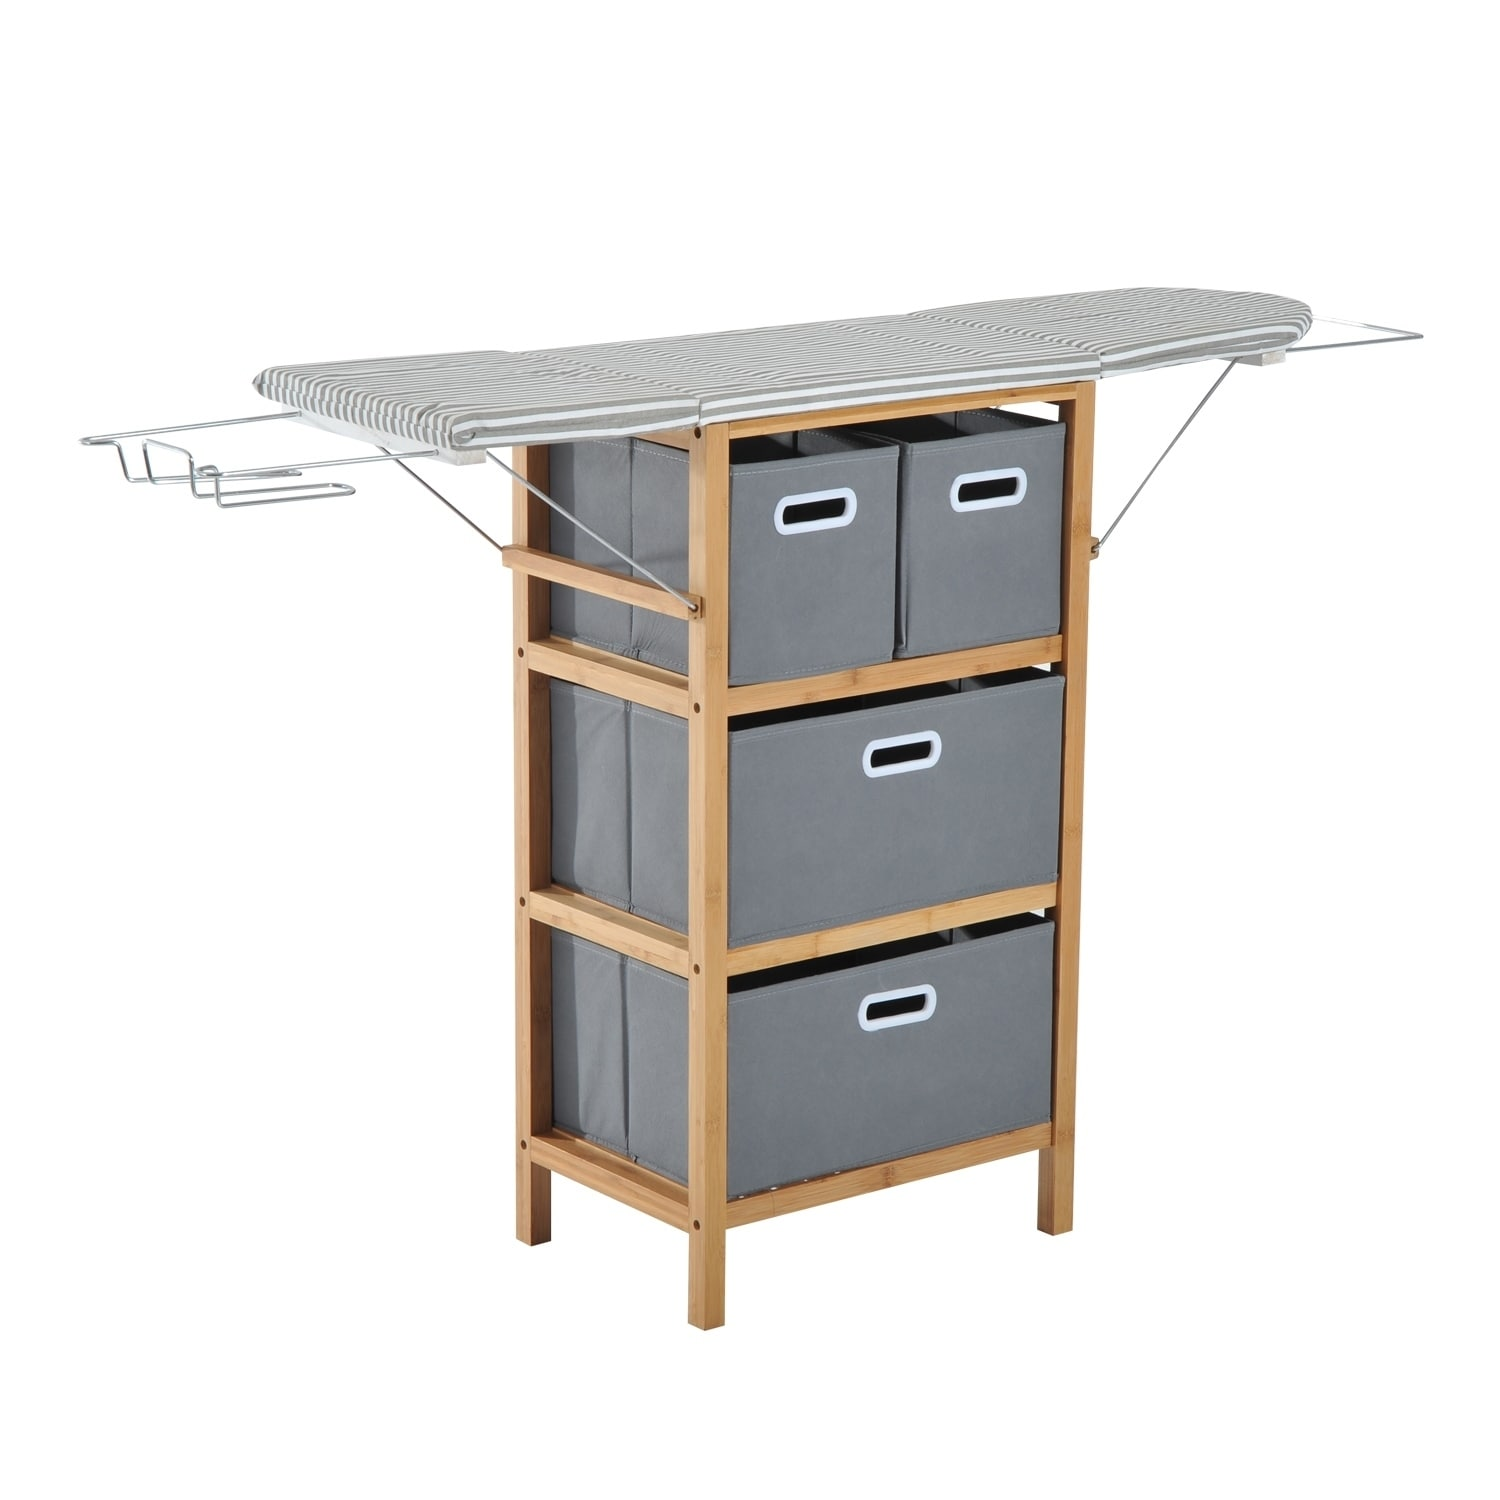 Homcom Collapsible Ironing Board And Shelving Unit With Storage Boxes